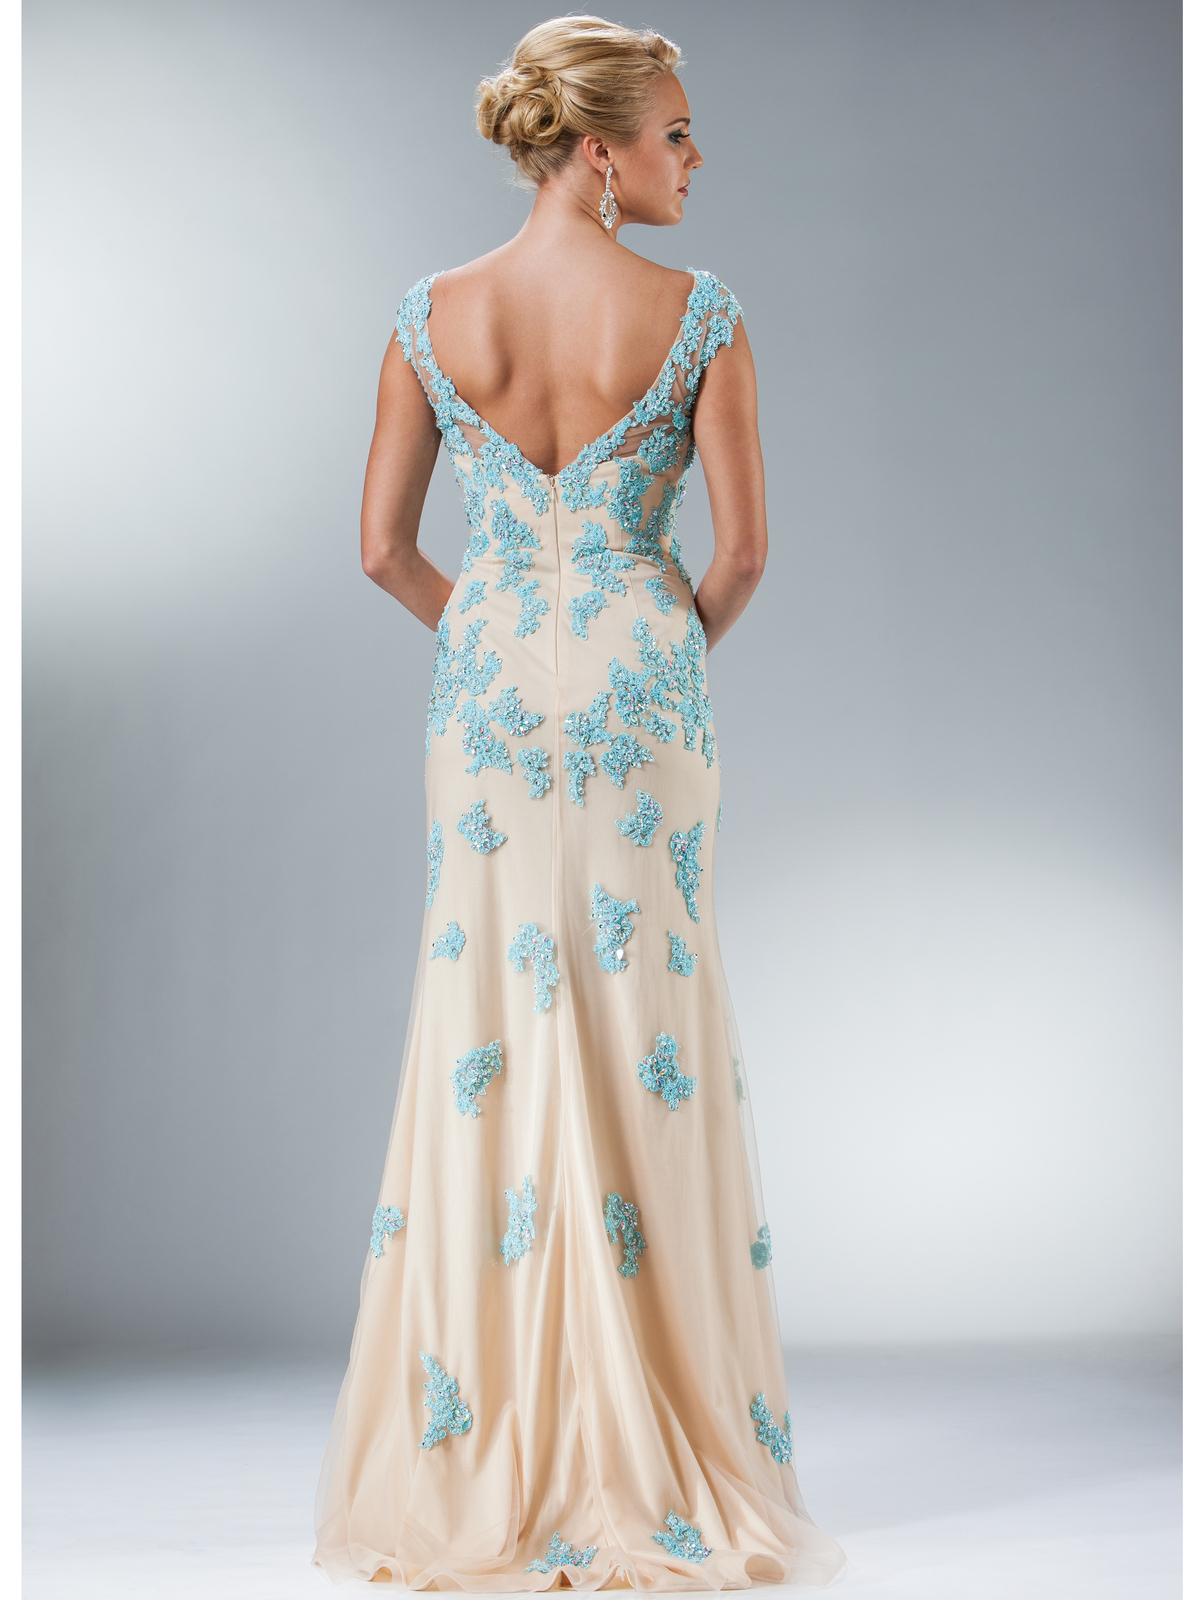 Floral Inspired Evening Gown - Sung Boutique L.A.